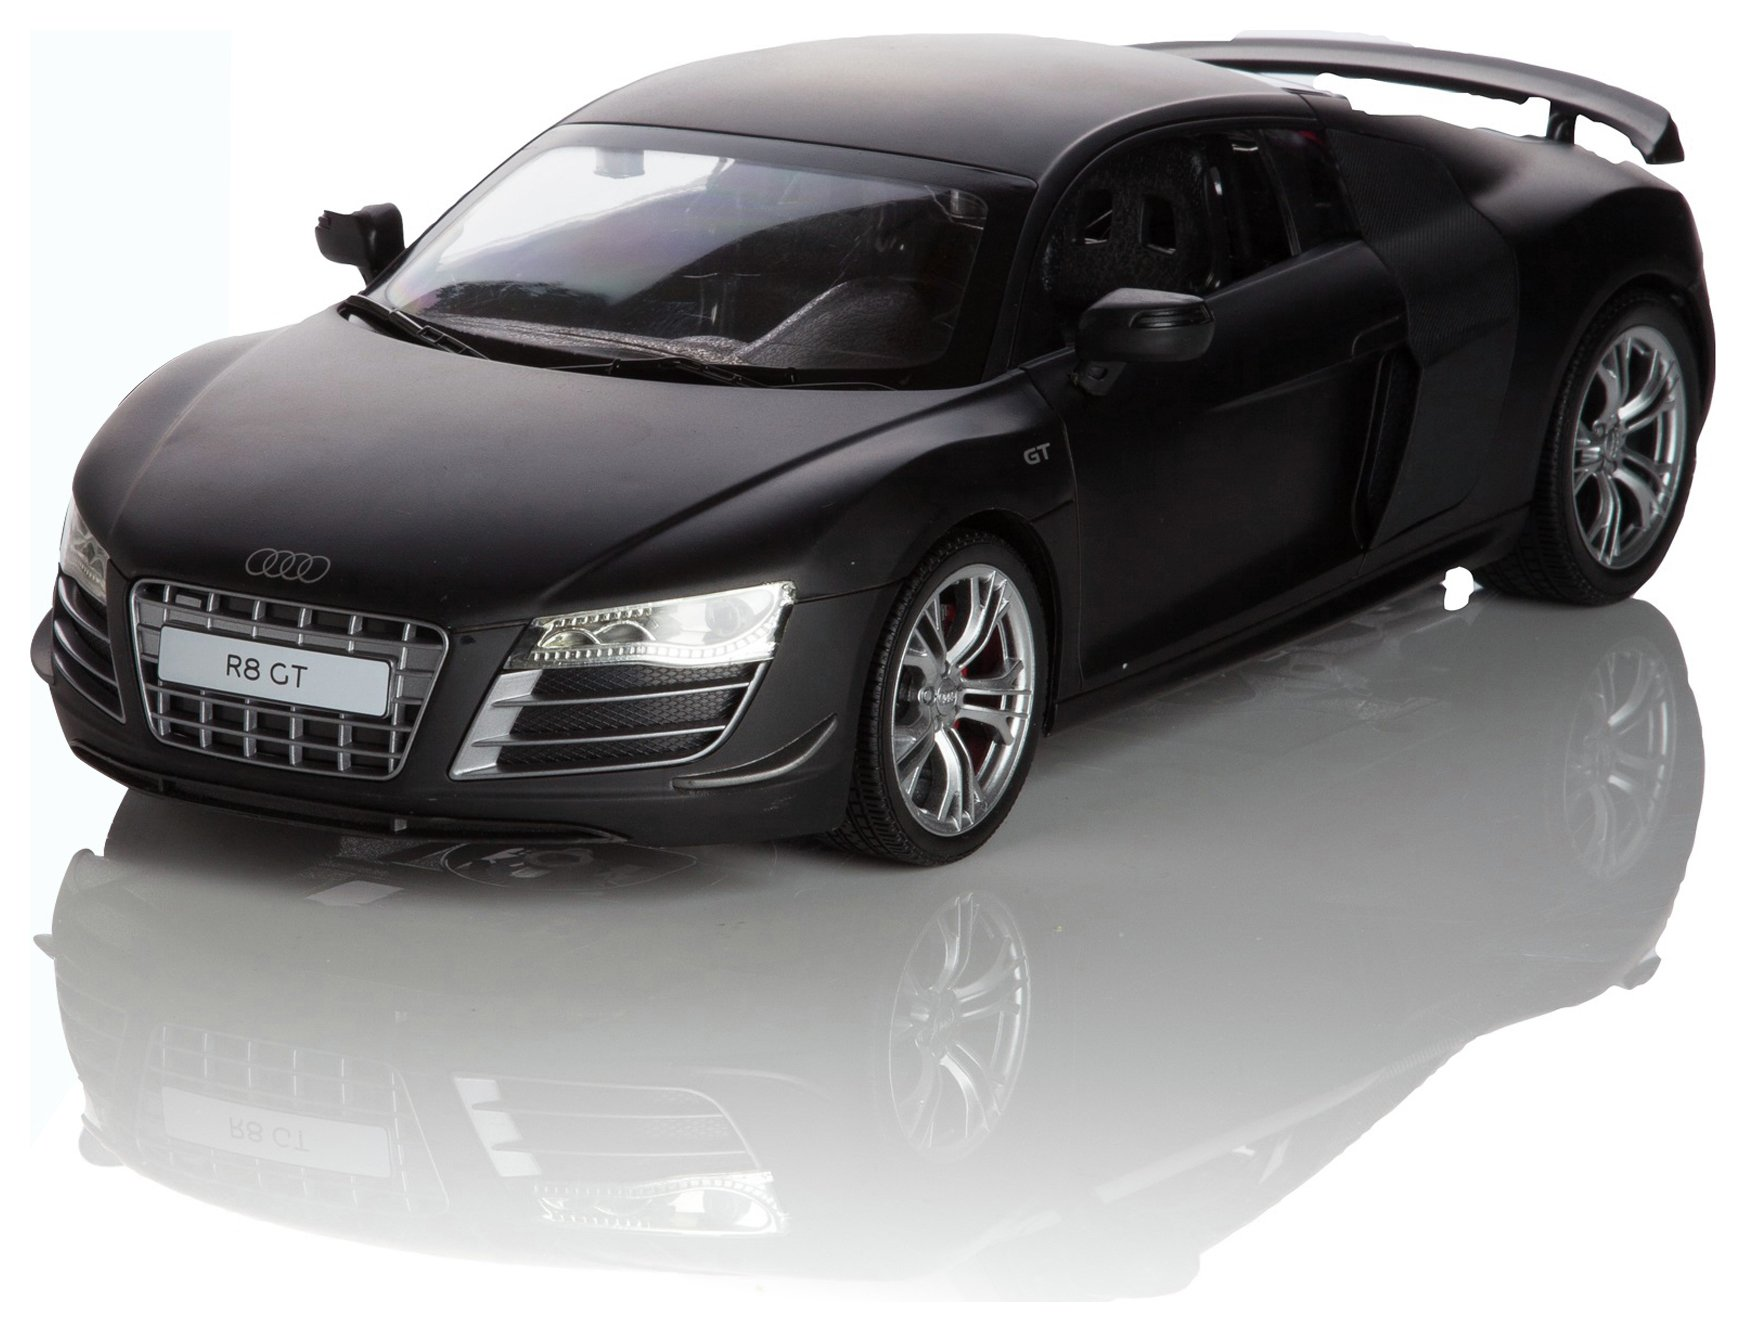 Image of Audi R8 1:14 Remote Control Car - Black.